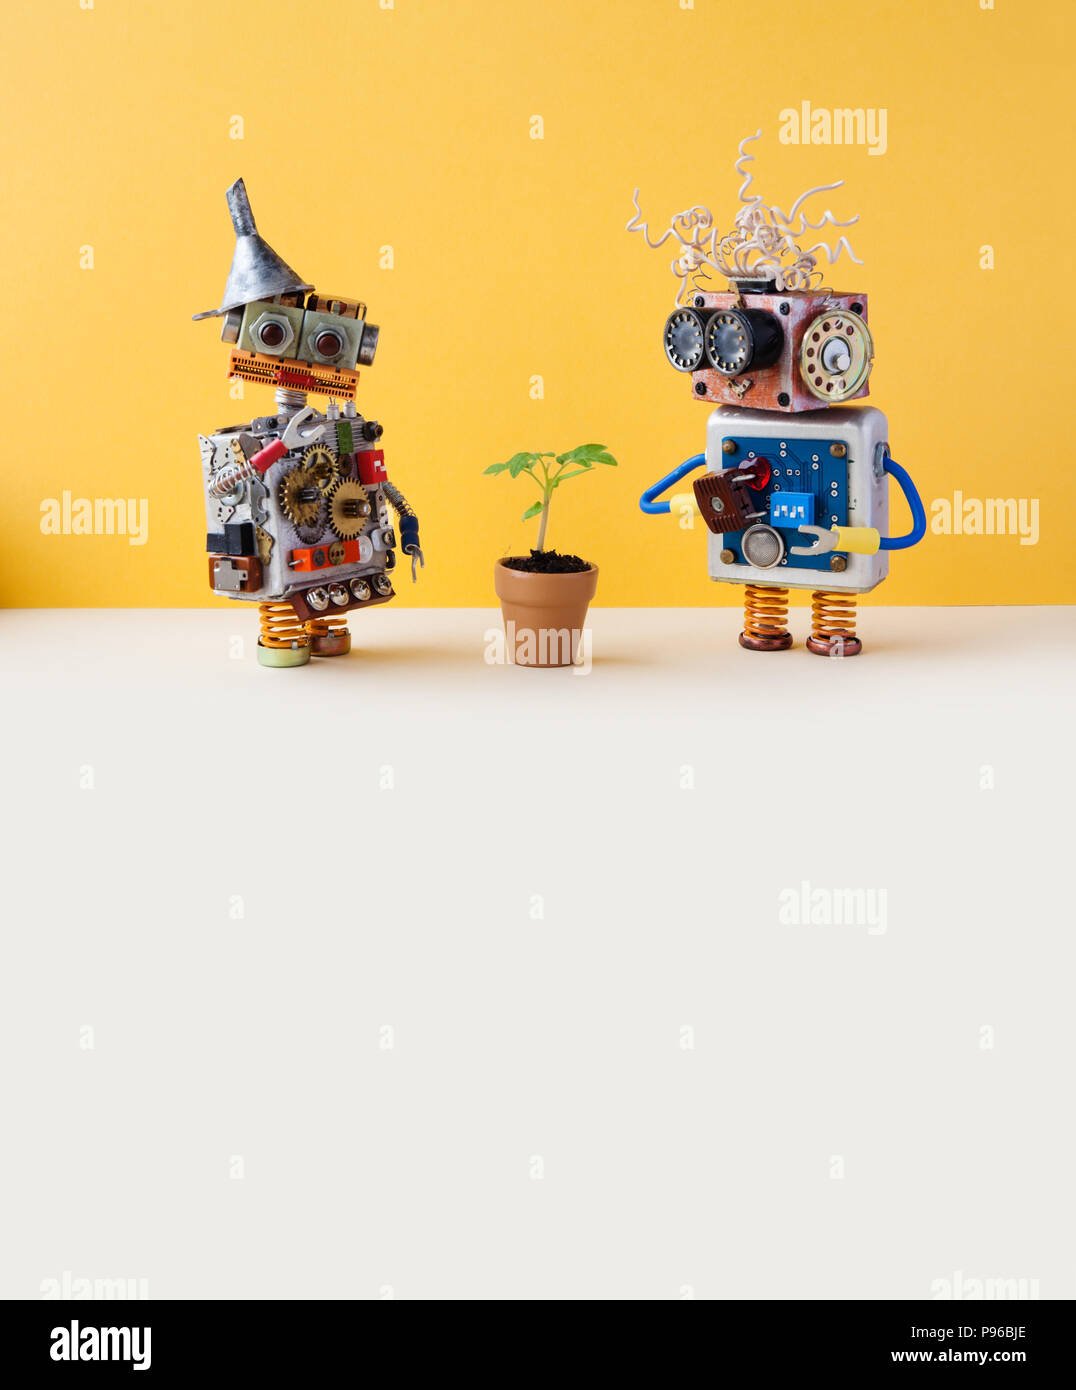 Two friendly robots and green plant in a flower clay pot. Technology versus organic life plant concept. Yellow wall background, white floor. Copy space. - Stock Image